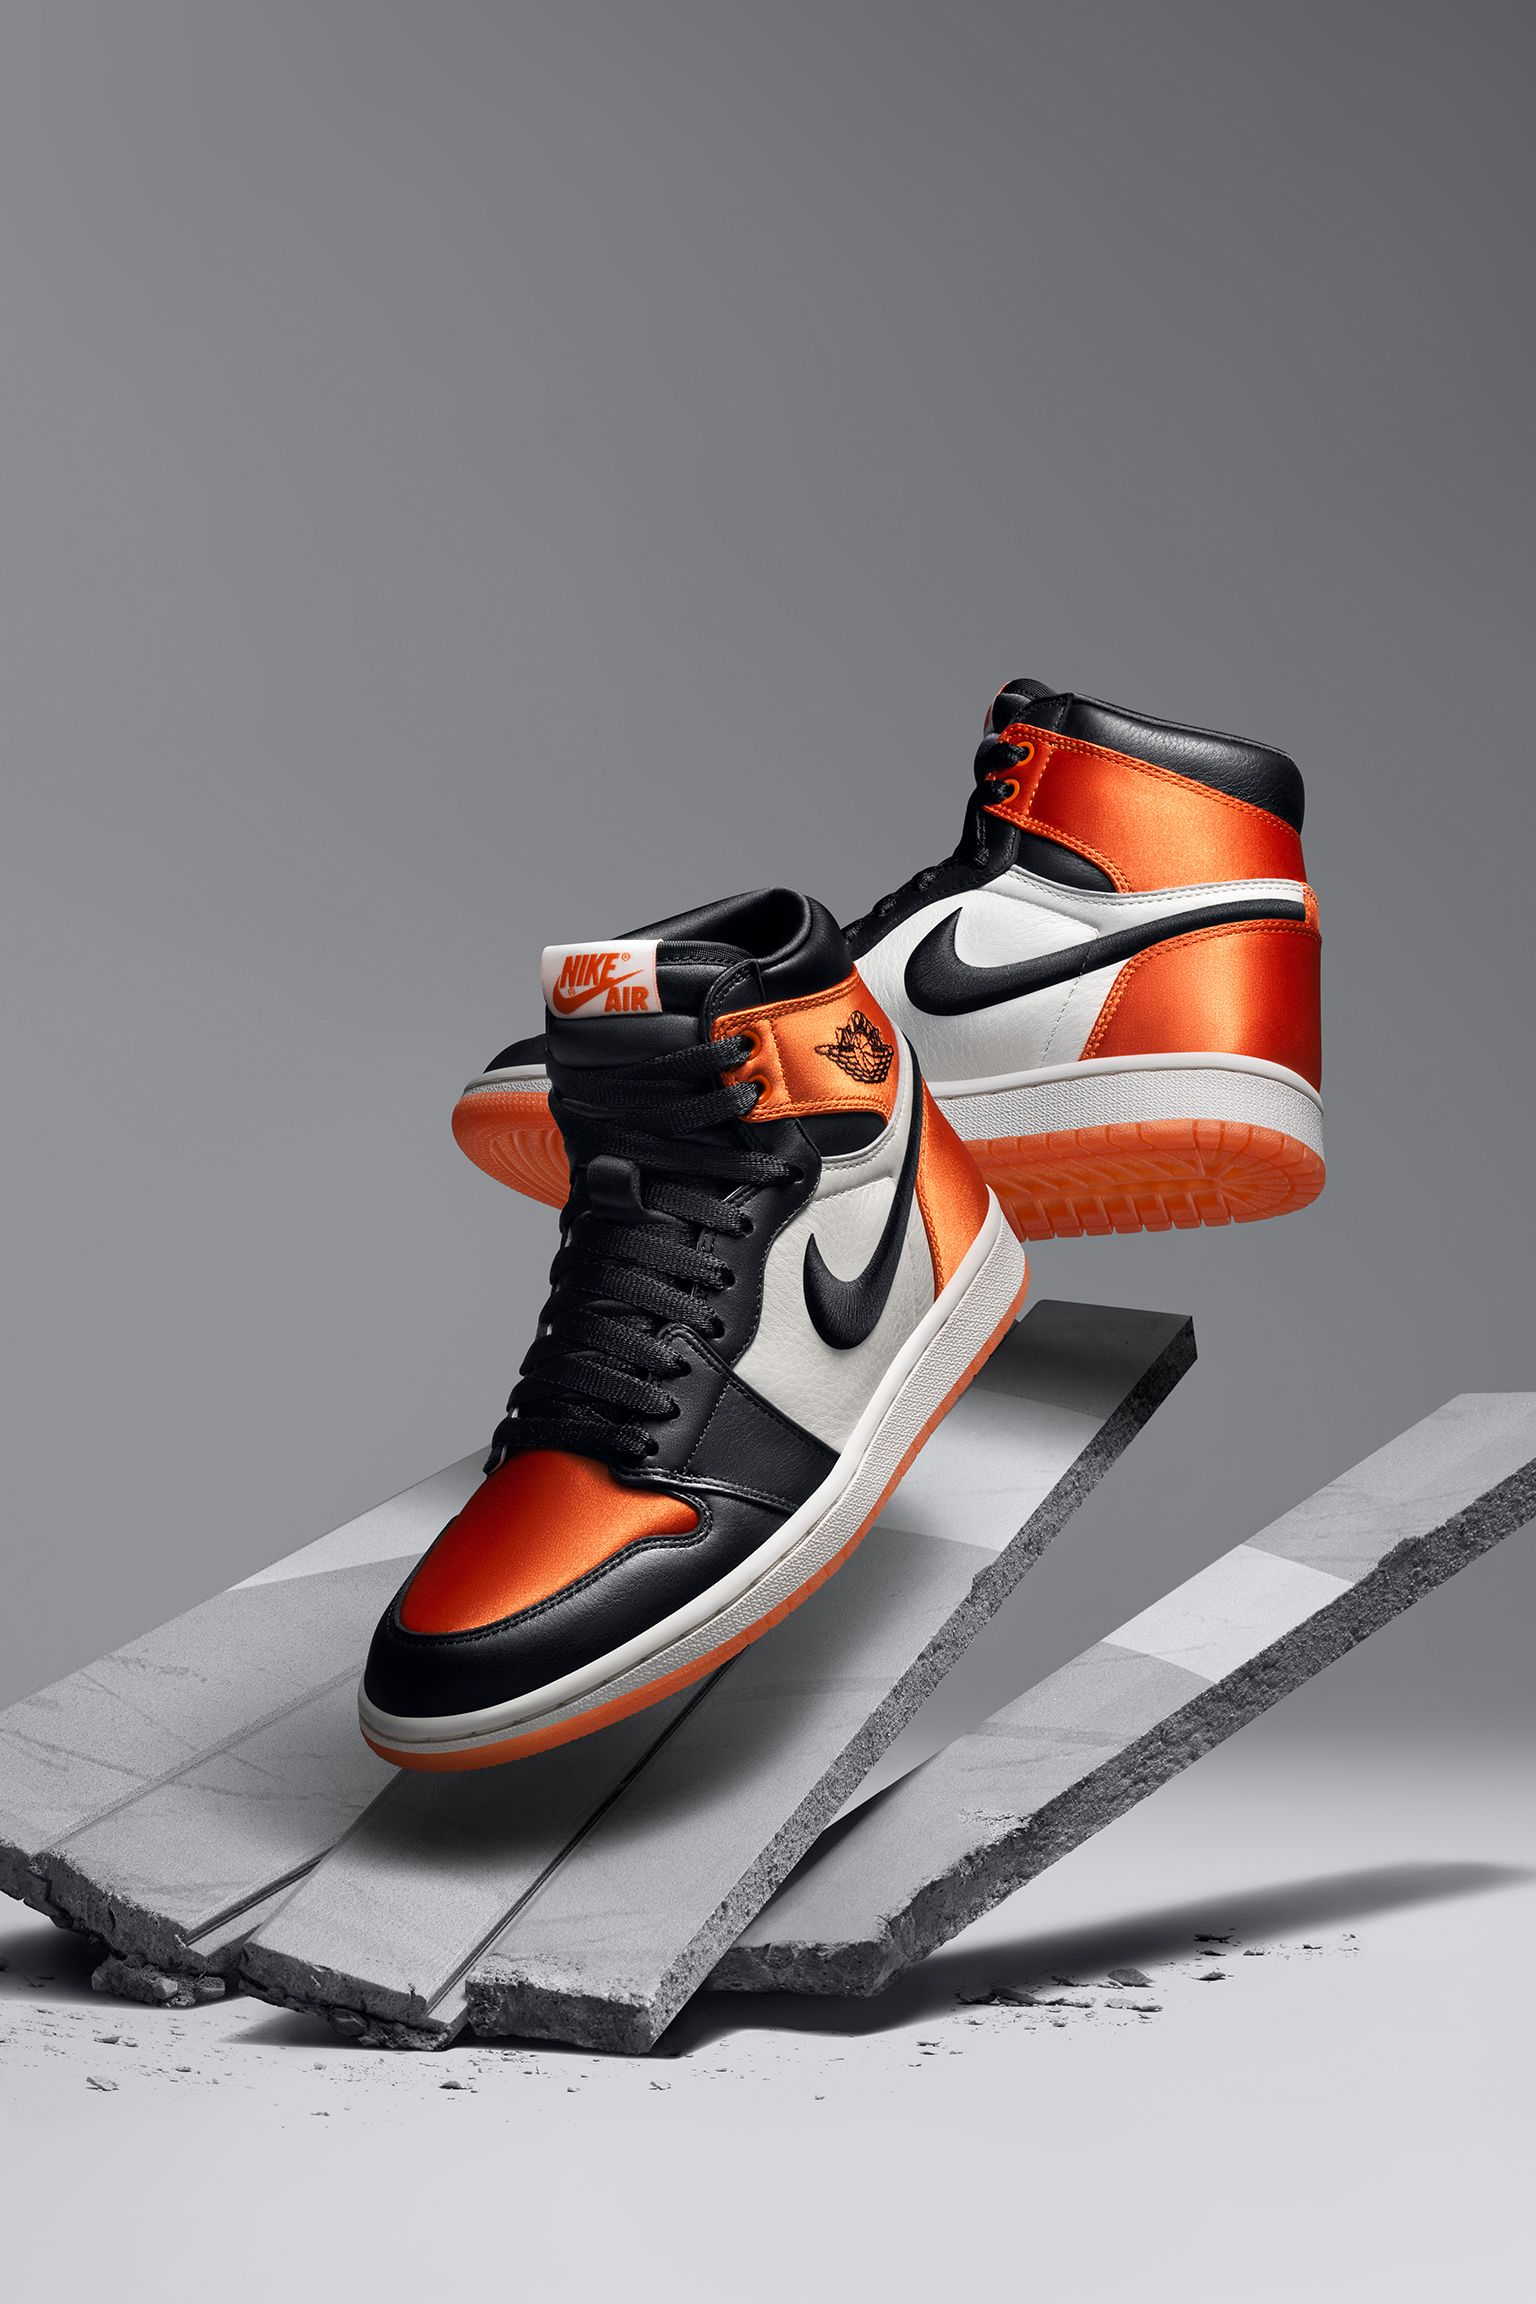 Women's Air Jordan 1 'Satin Shattered Backboard' Release Date